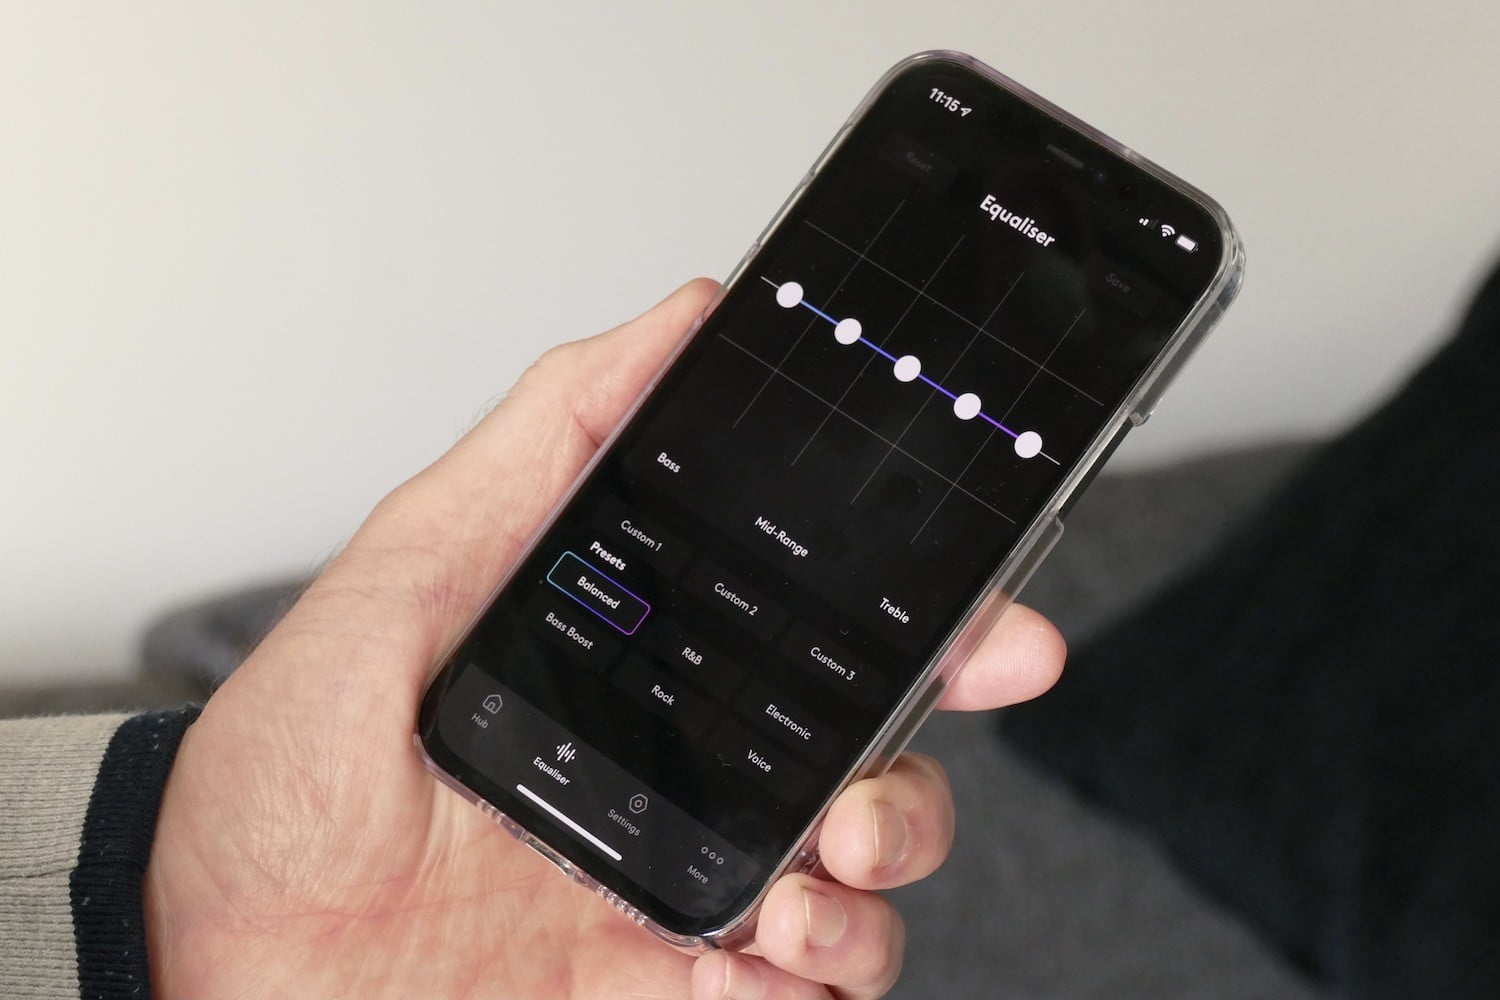 cambridge audio melomania touch review app equaliser